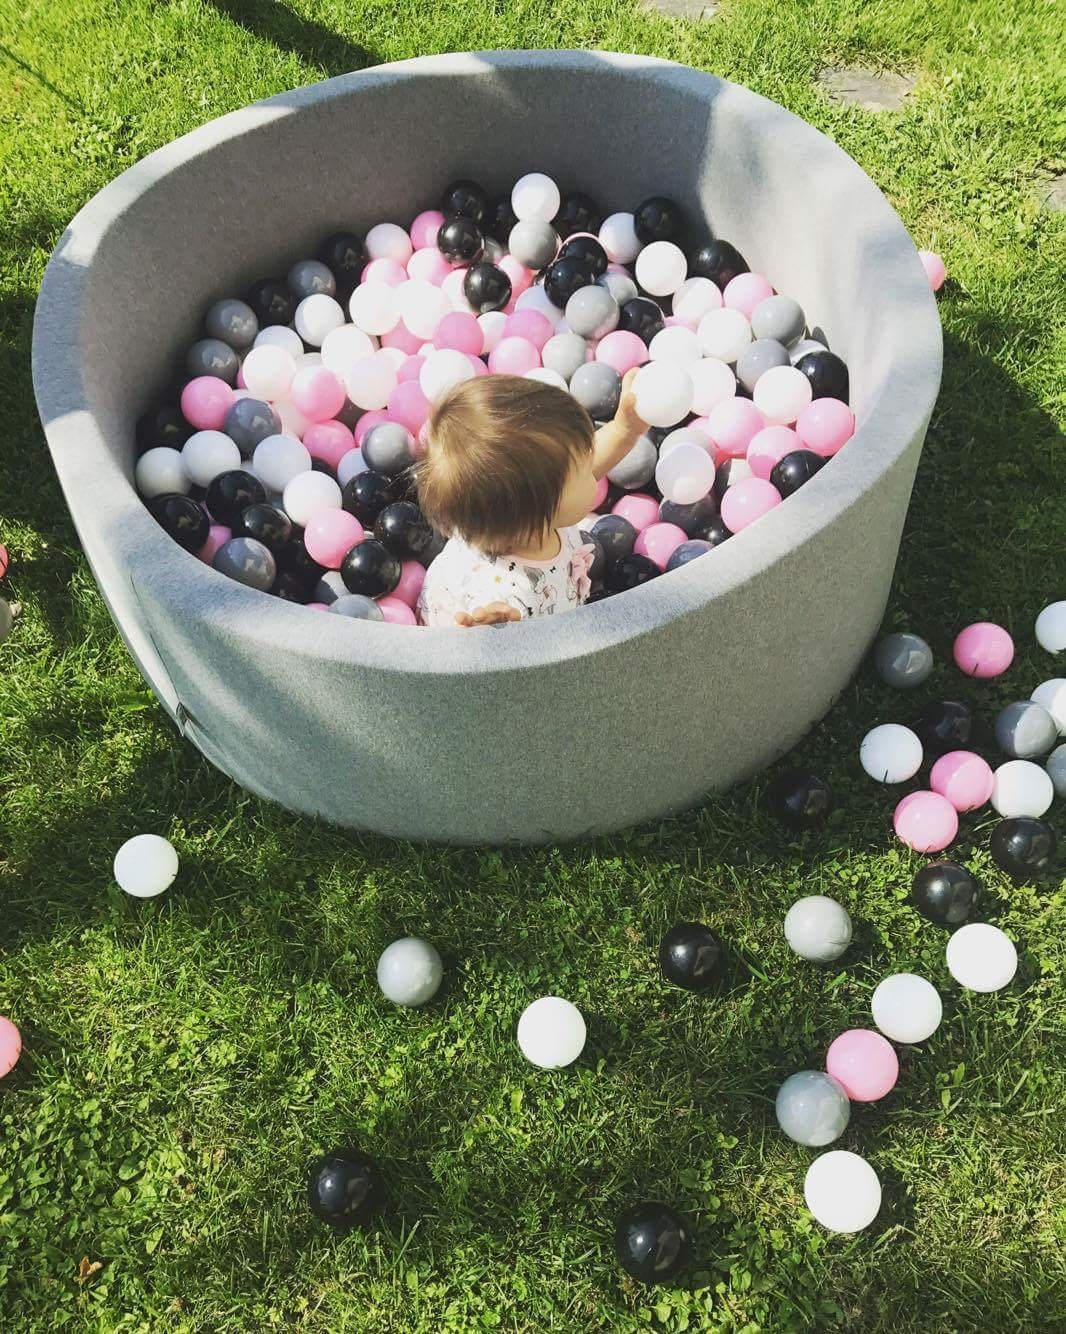 ball pit / big XL dark grey ball pit / ball pit for kids /